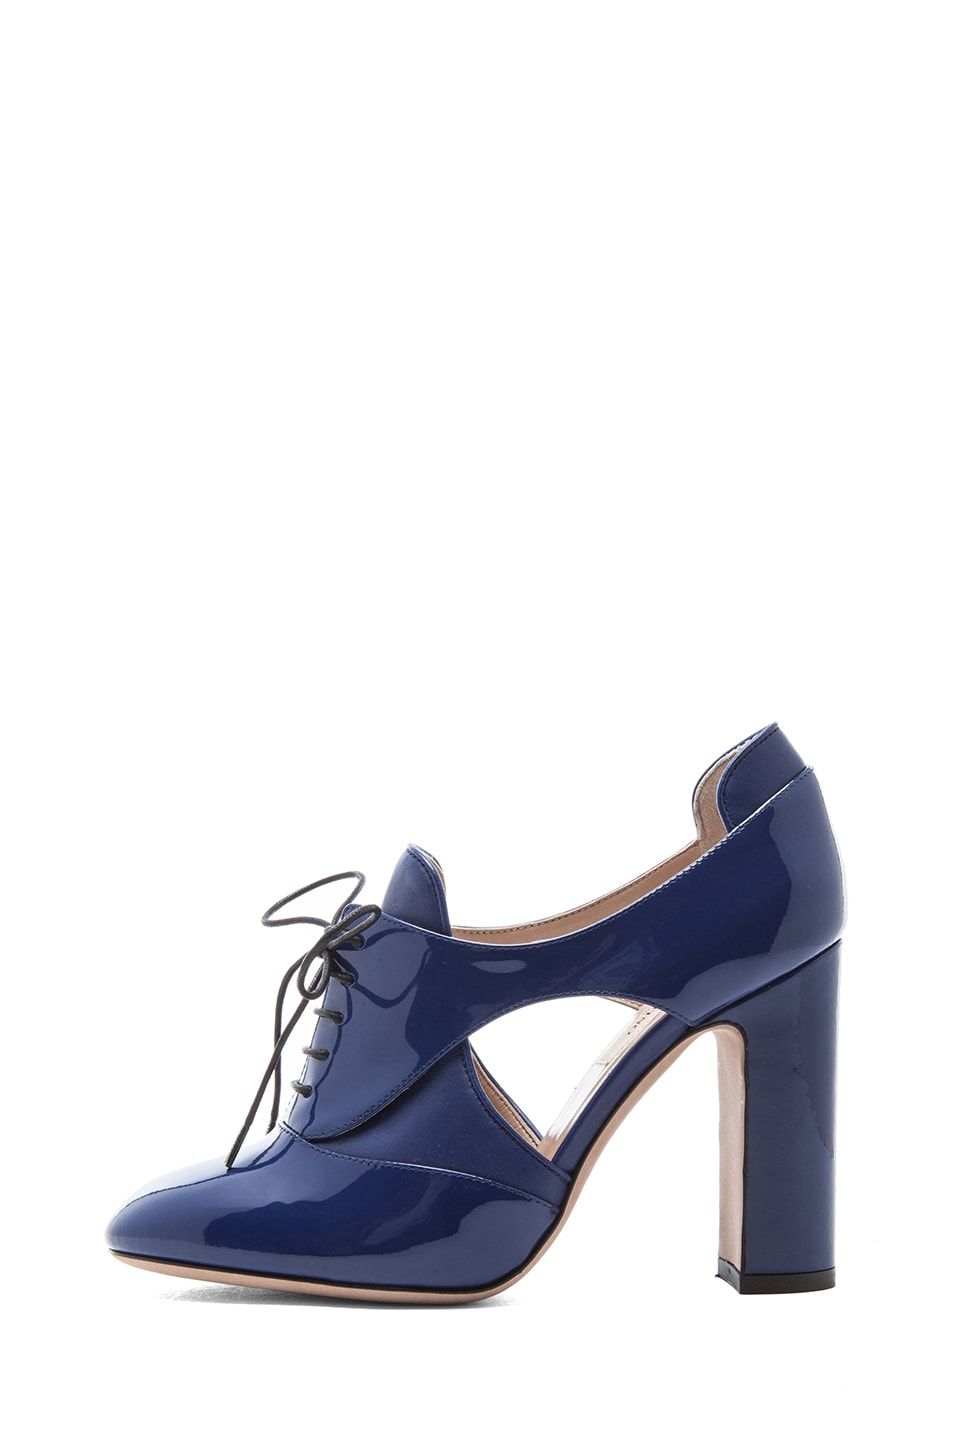 Image 1 of Valentino Tied Overlap Patent Lace Up Heels T.100 in Blue China